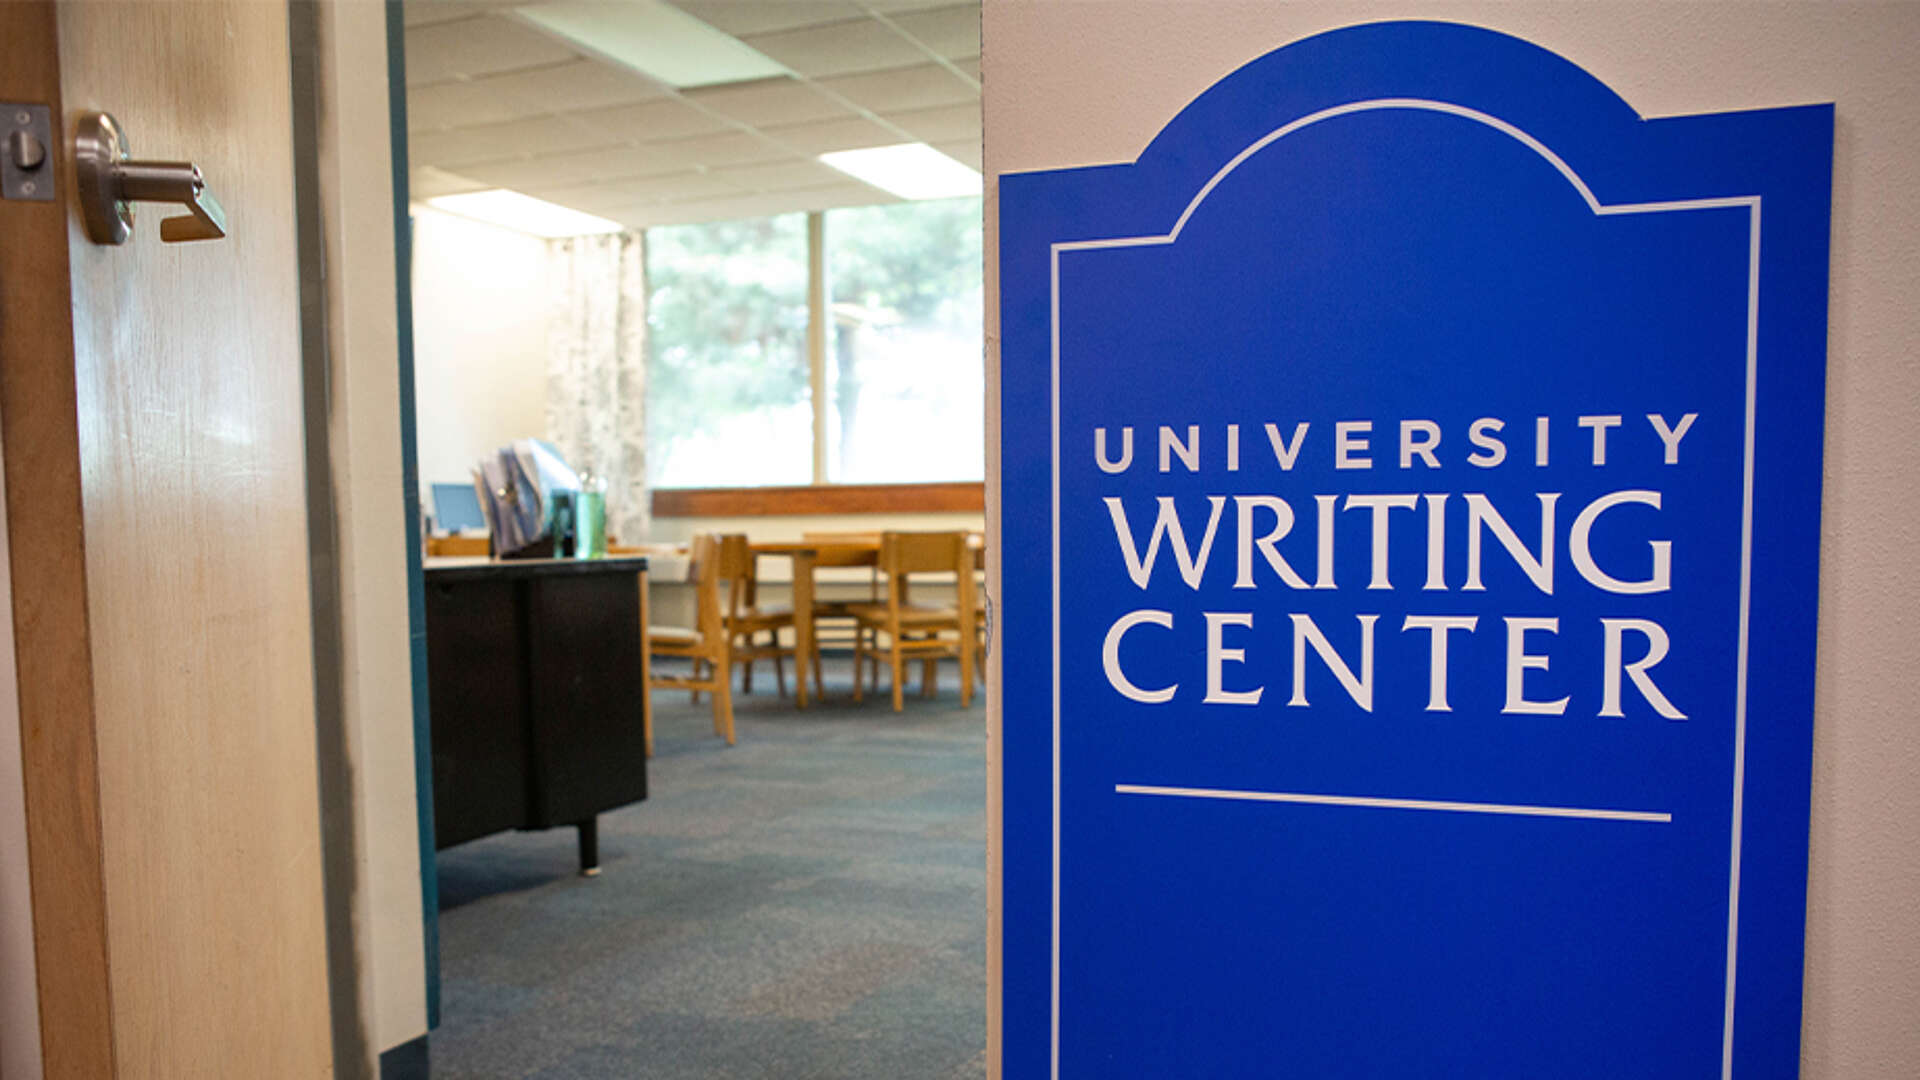 University Writing Center sign by open door of office